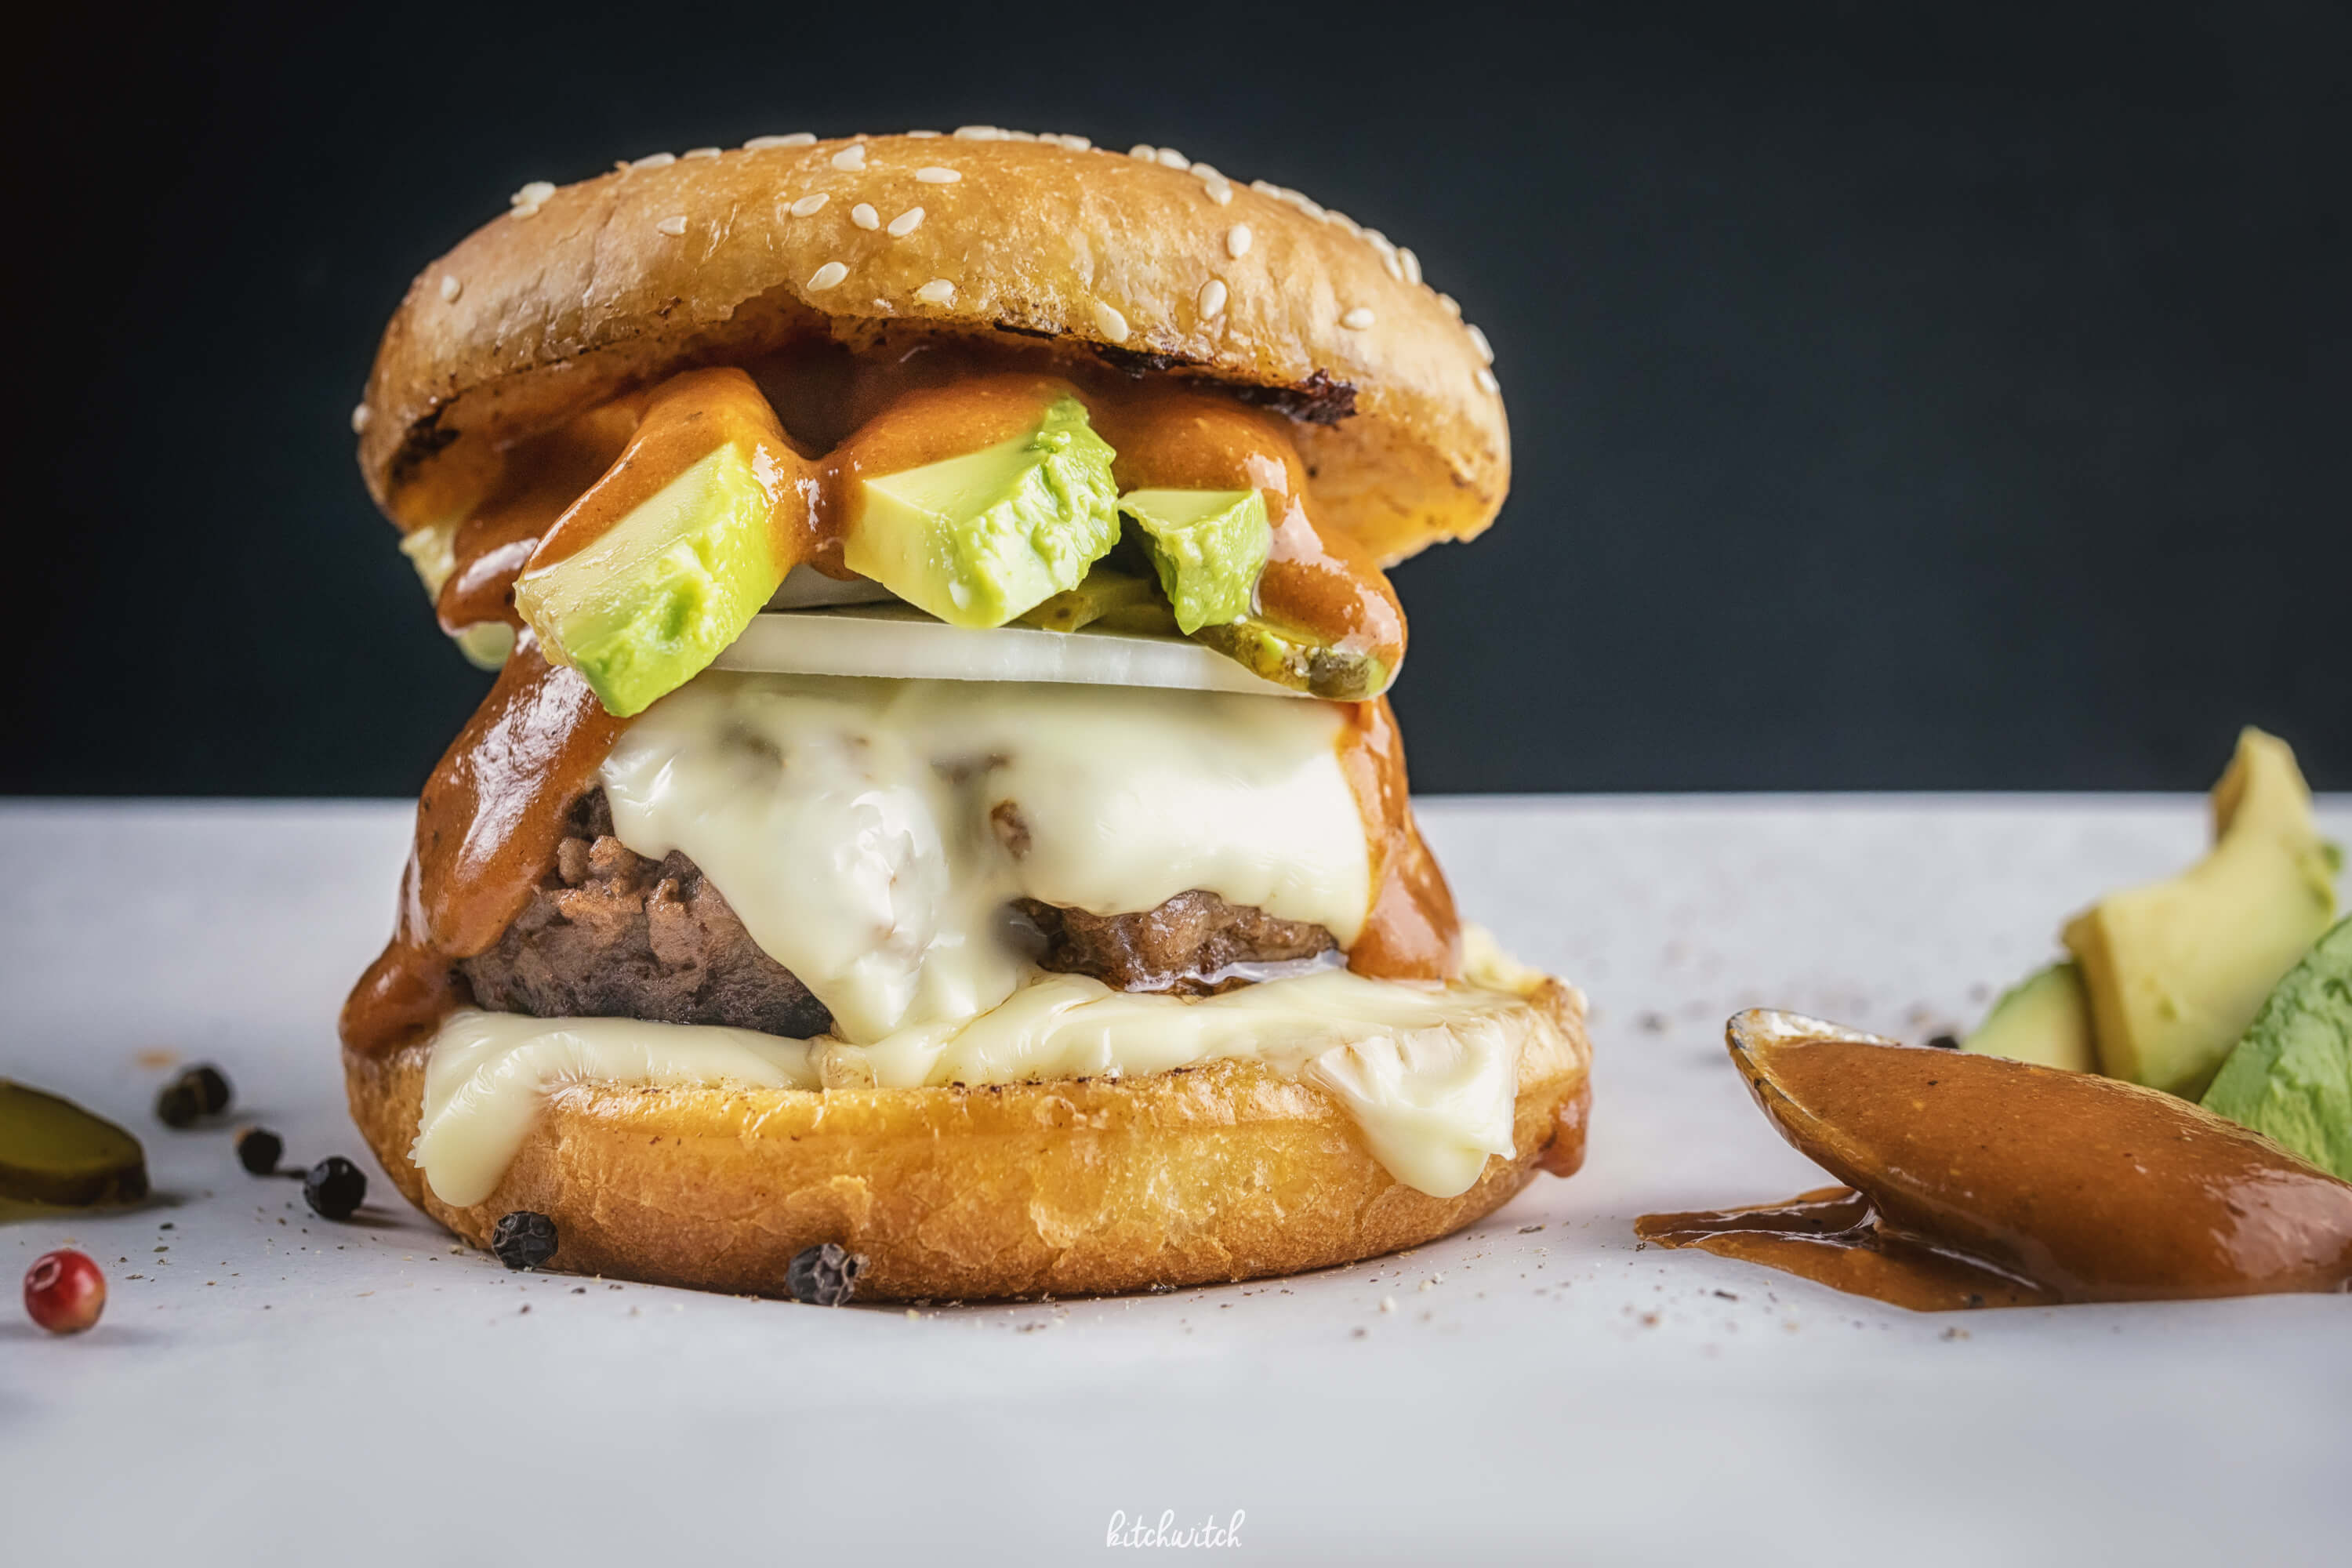 Avocado-Cheeseburger mit Rindfleisch-1